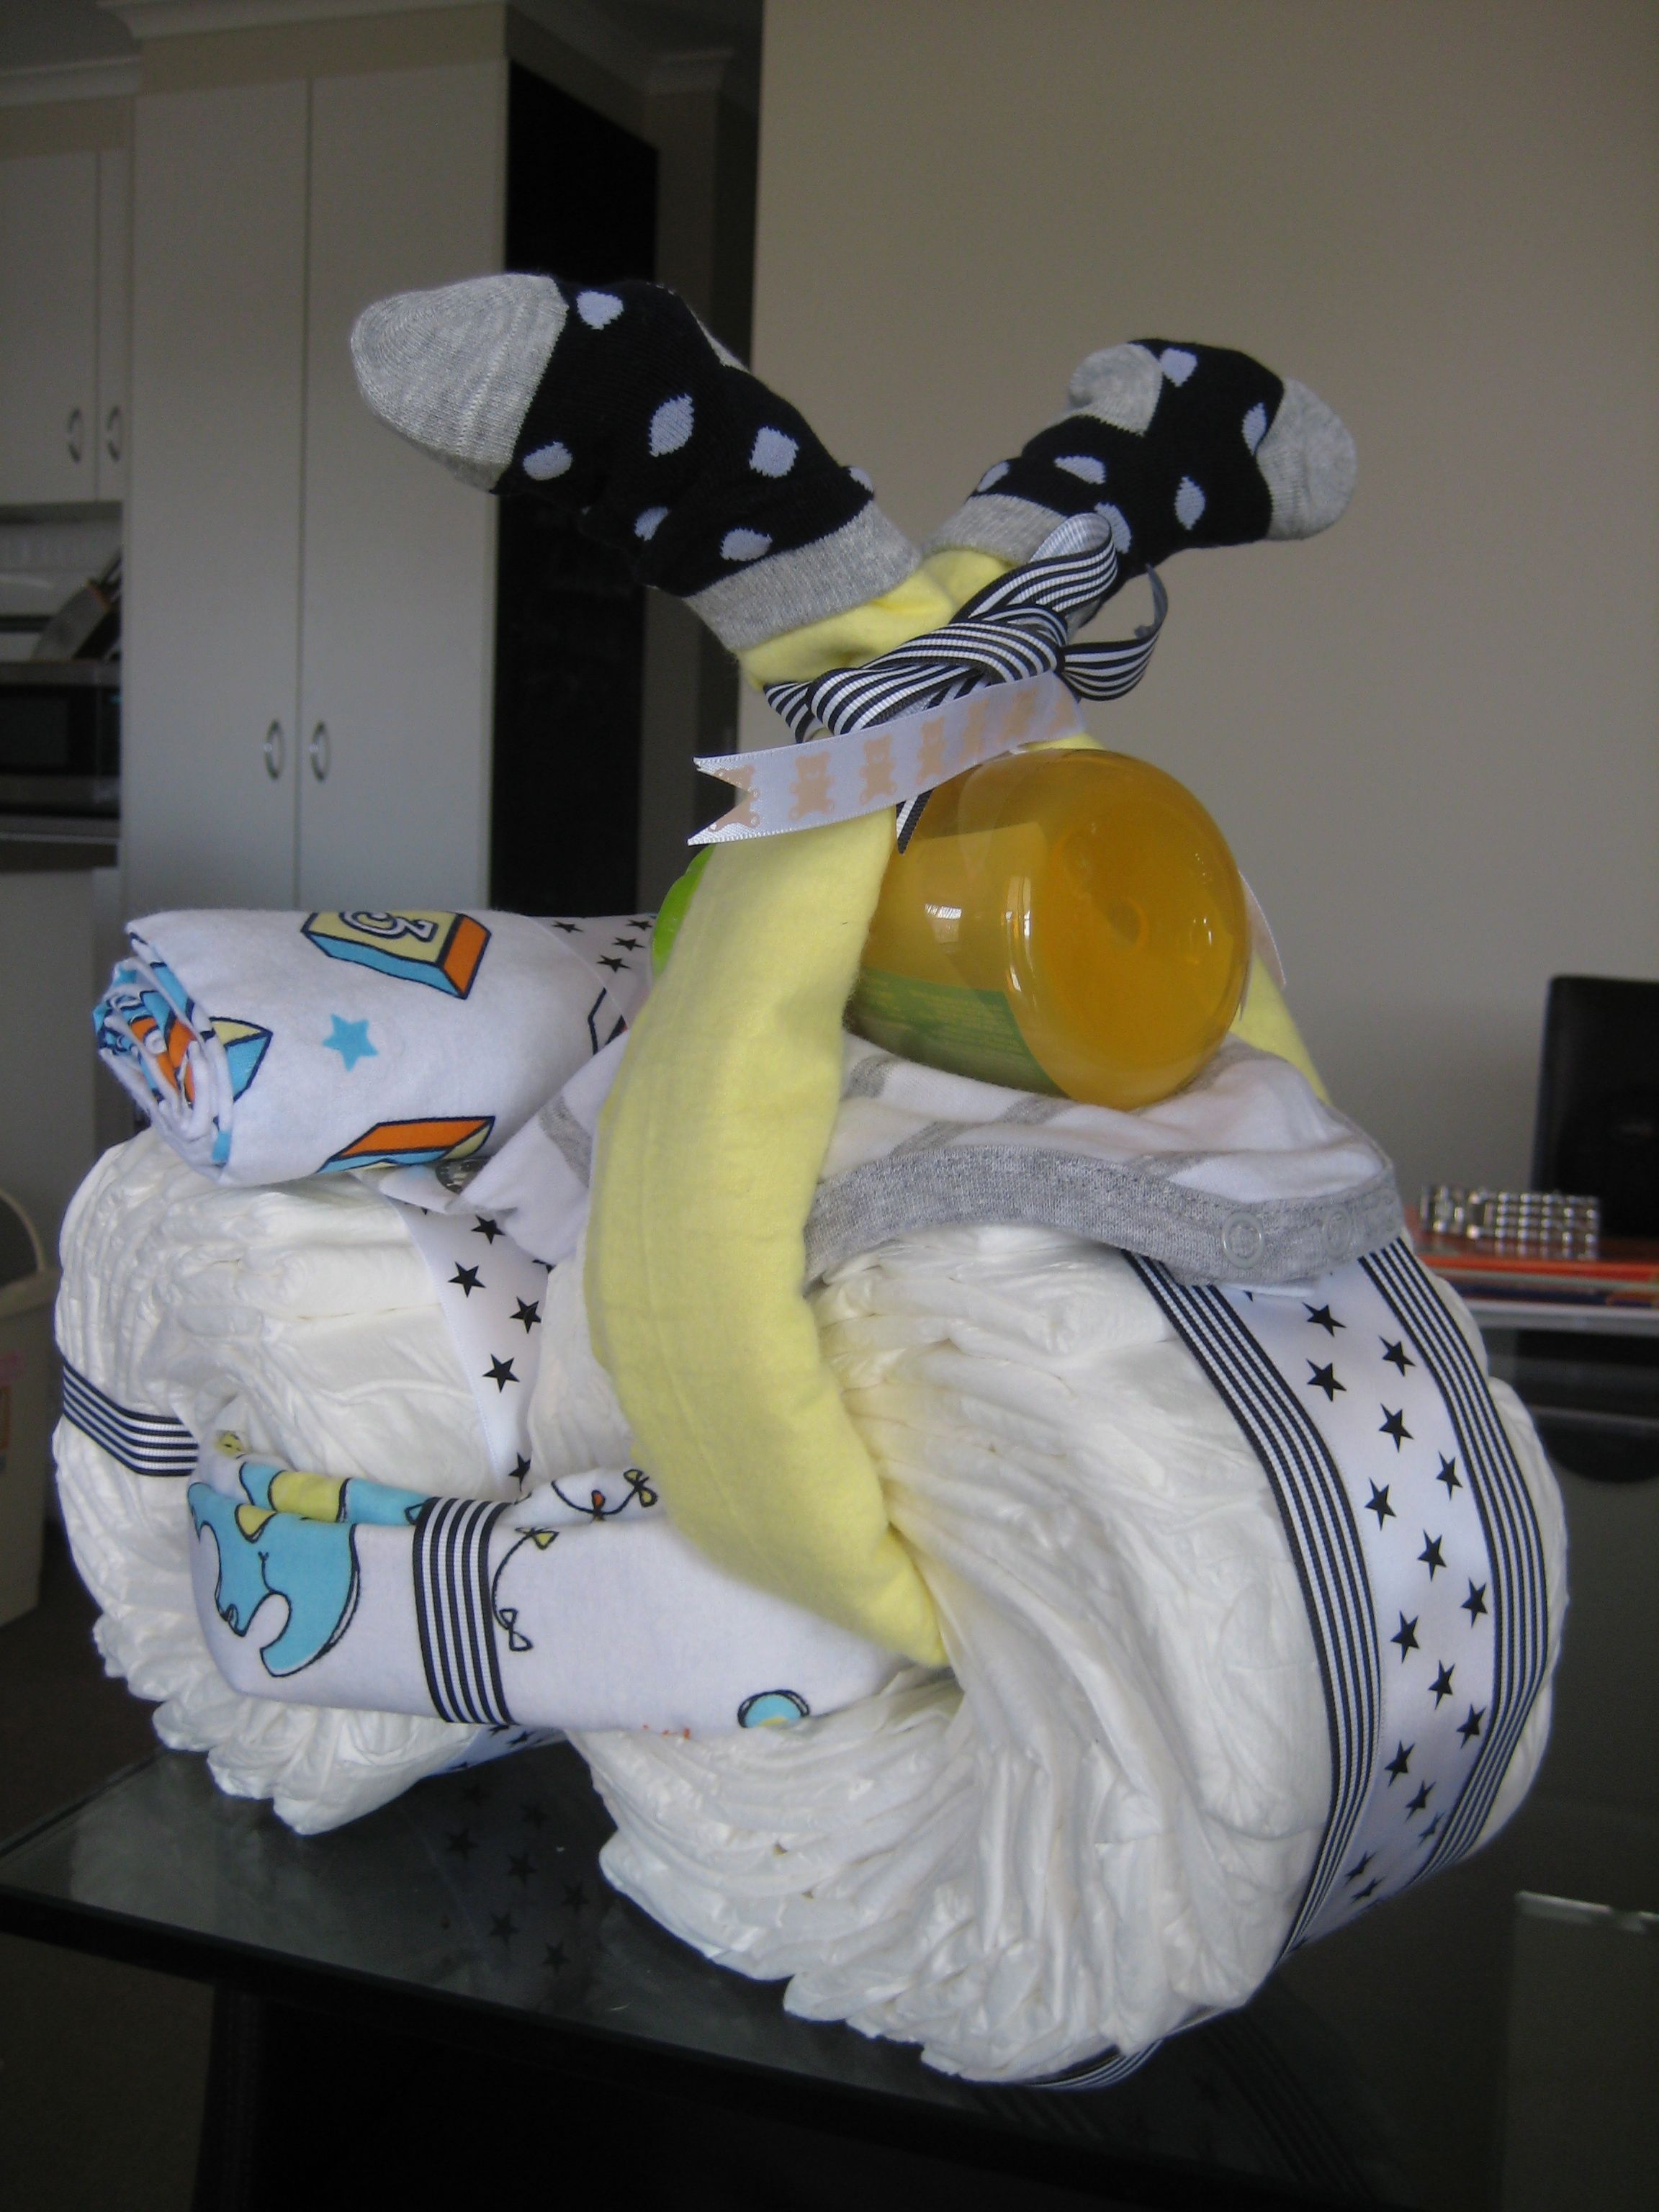 My first baby shower presenthope jax loves it gift ideas my first baby shower presenthope jax loves it negle Gallery